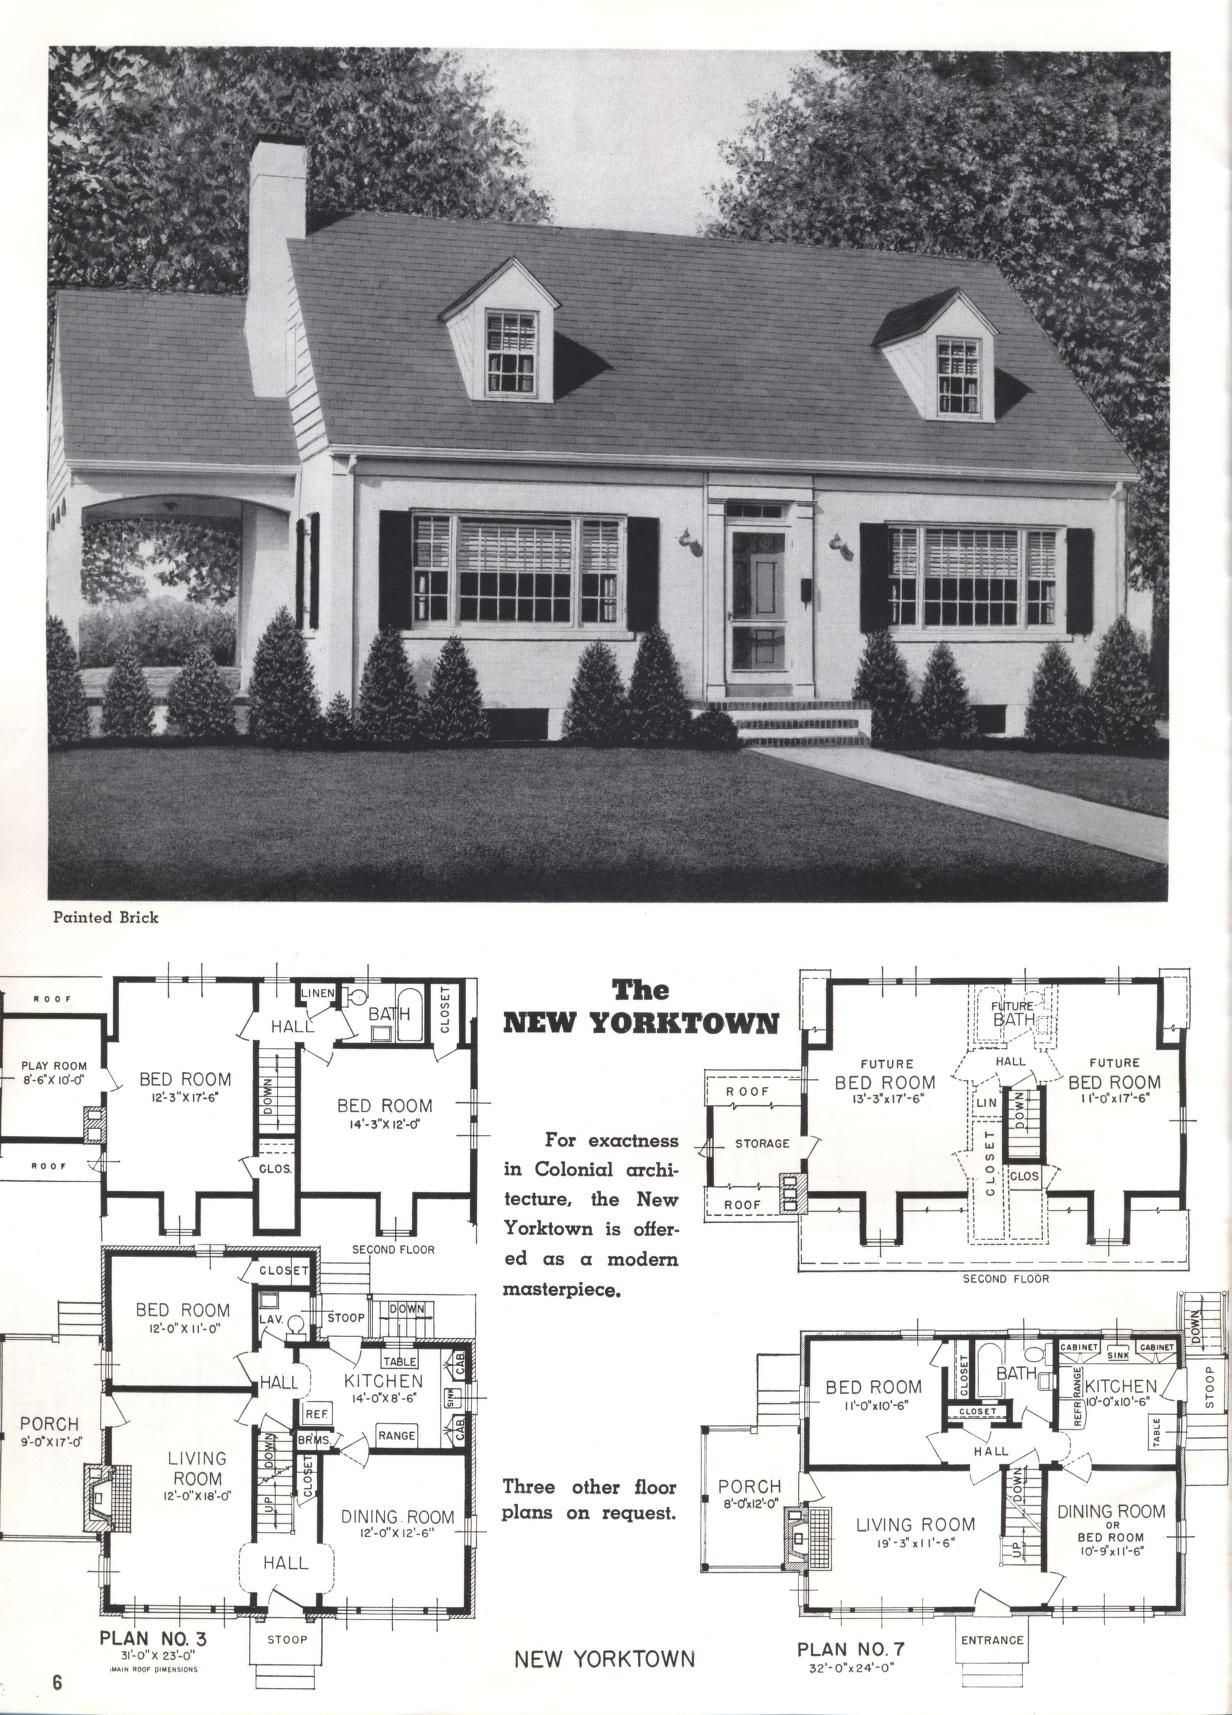 Better Homes At Lower Cost A 50 By Standard Homes Co Publication Date 1950 The New Yorktown Sims House Plans Vintage House Plans House Floor Plans